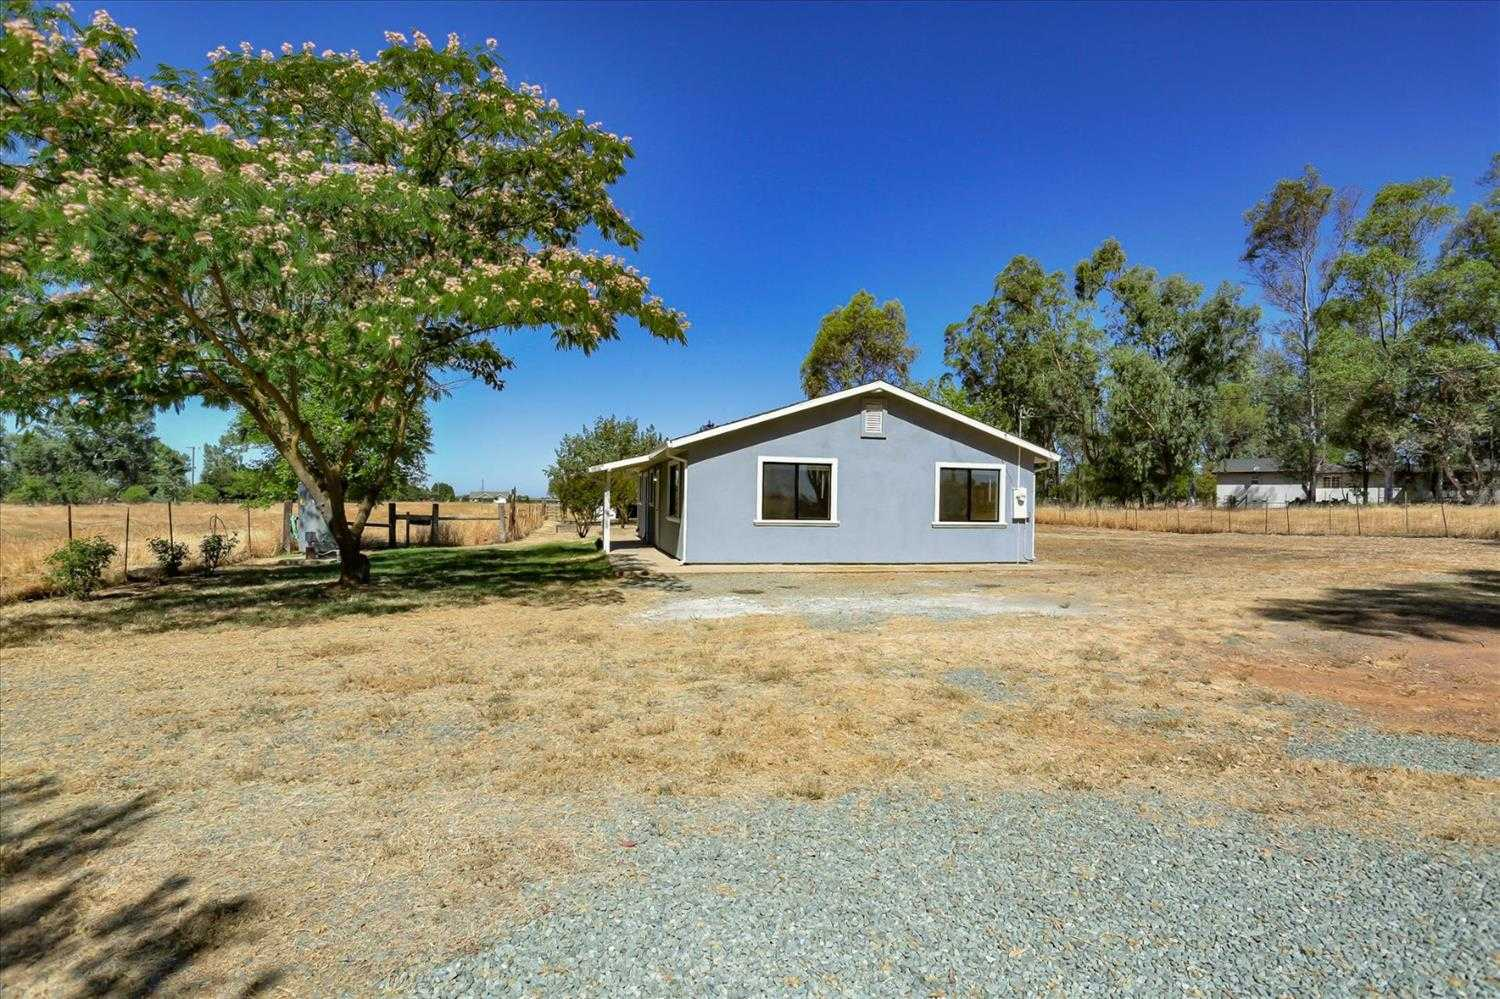 12180 Clay Station Rd Herald, CA 95638